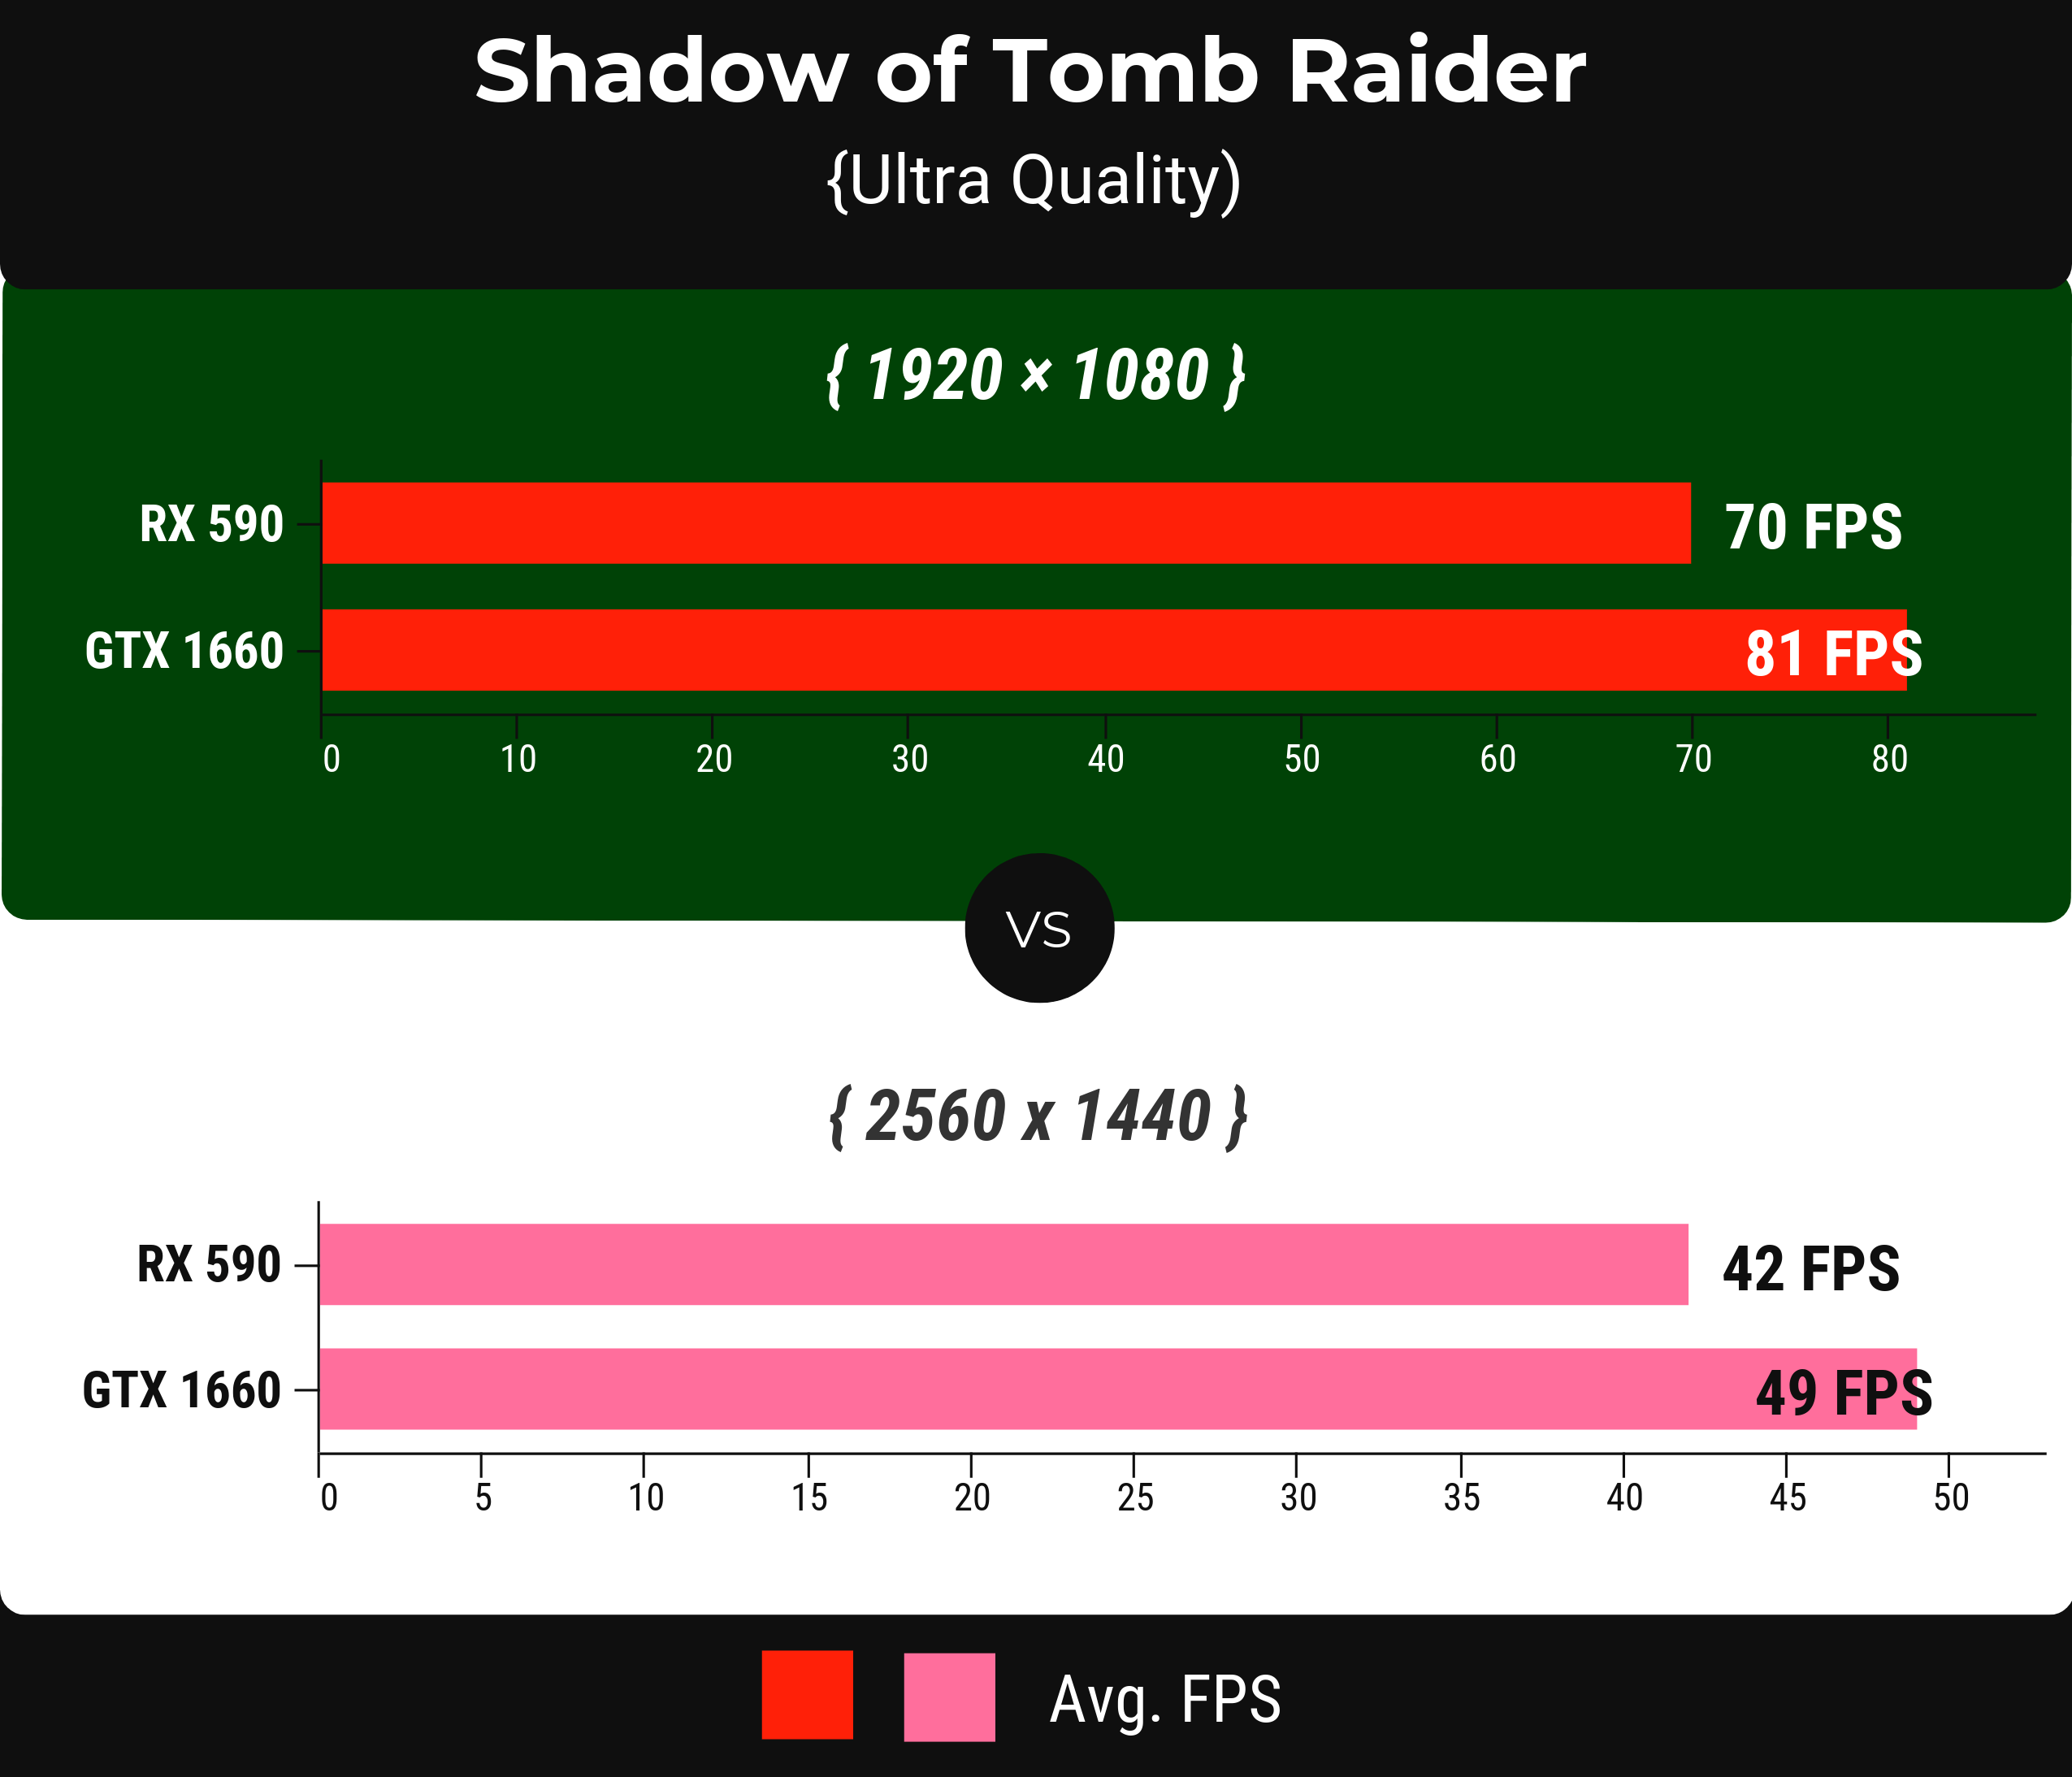 Shadow of Tomb Raider - rx 590 vs gtx 1660